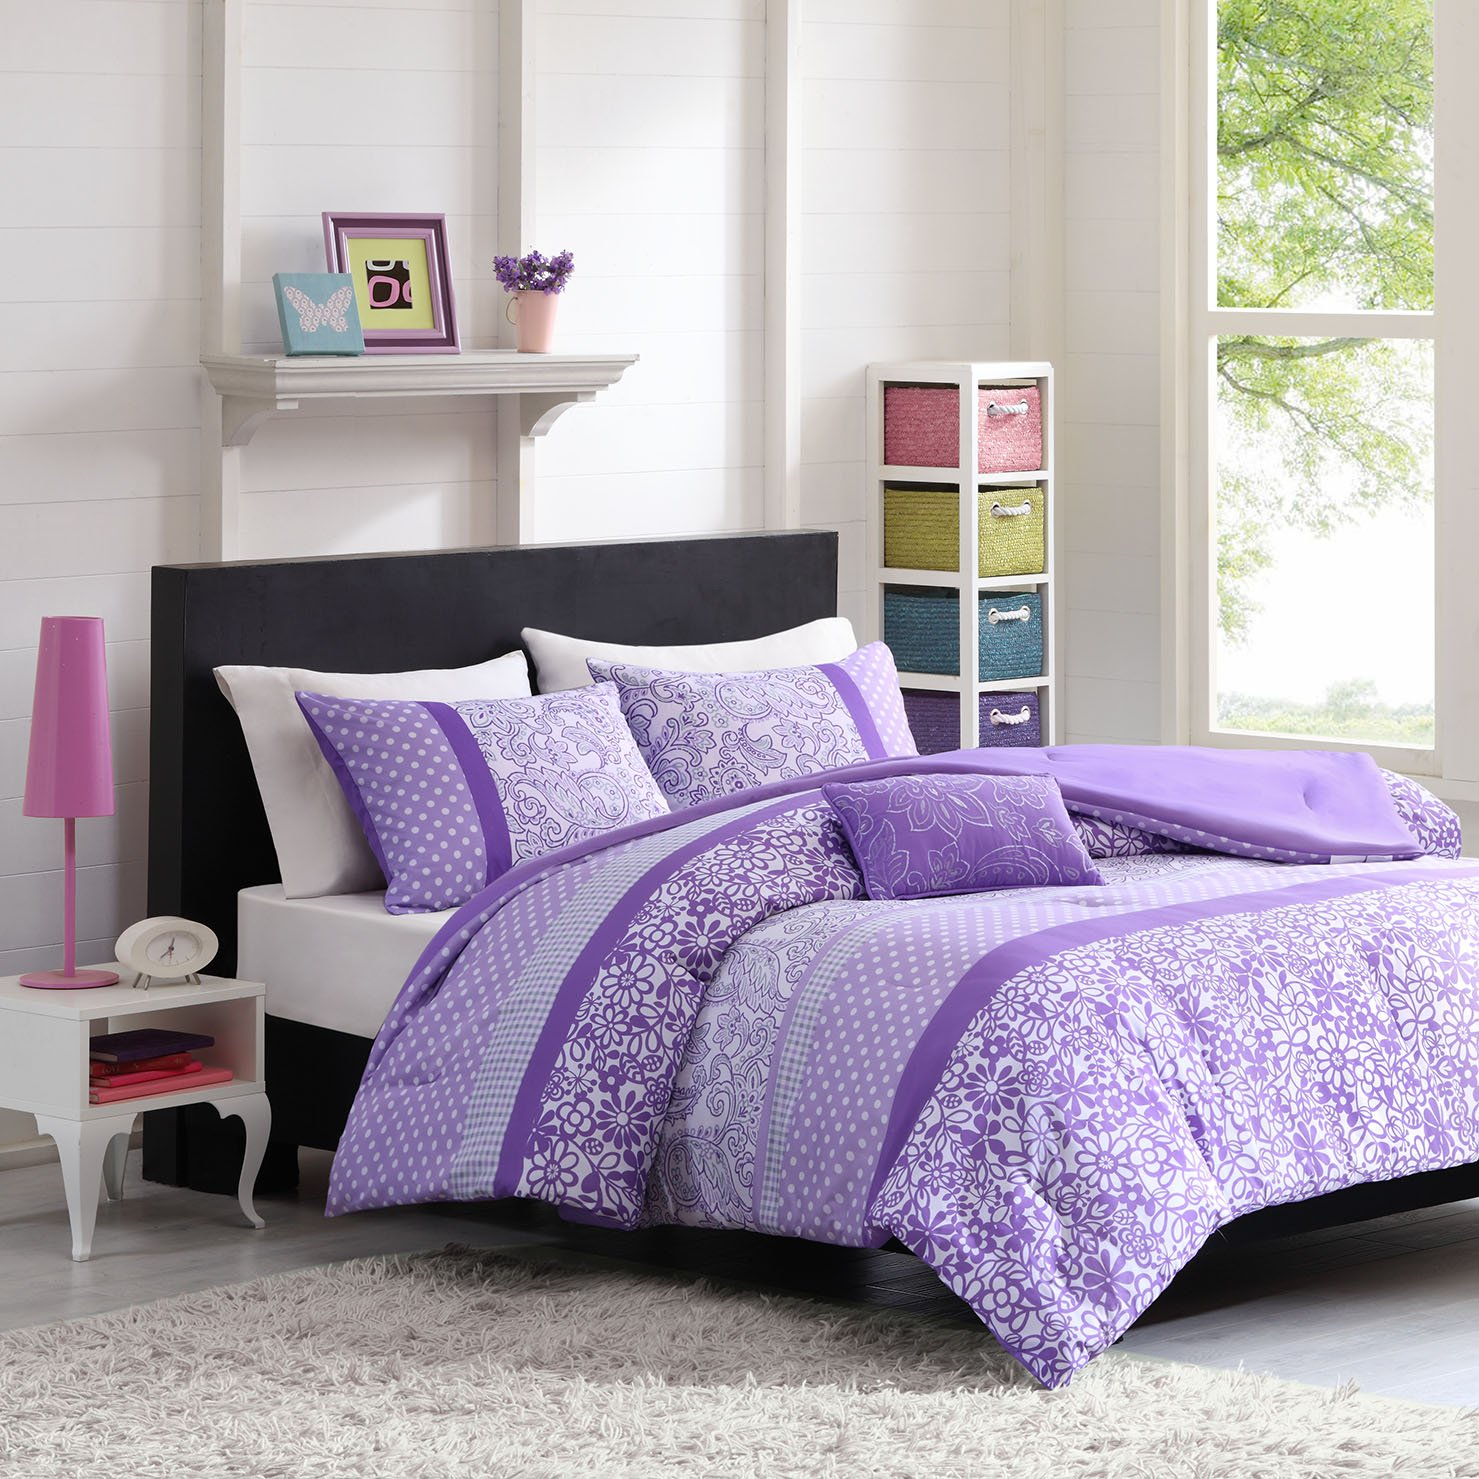 purple sets archive bedroom with bedding enticing full throughout size your to applied in queen comforter house tag bed design color